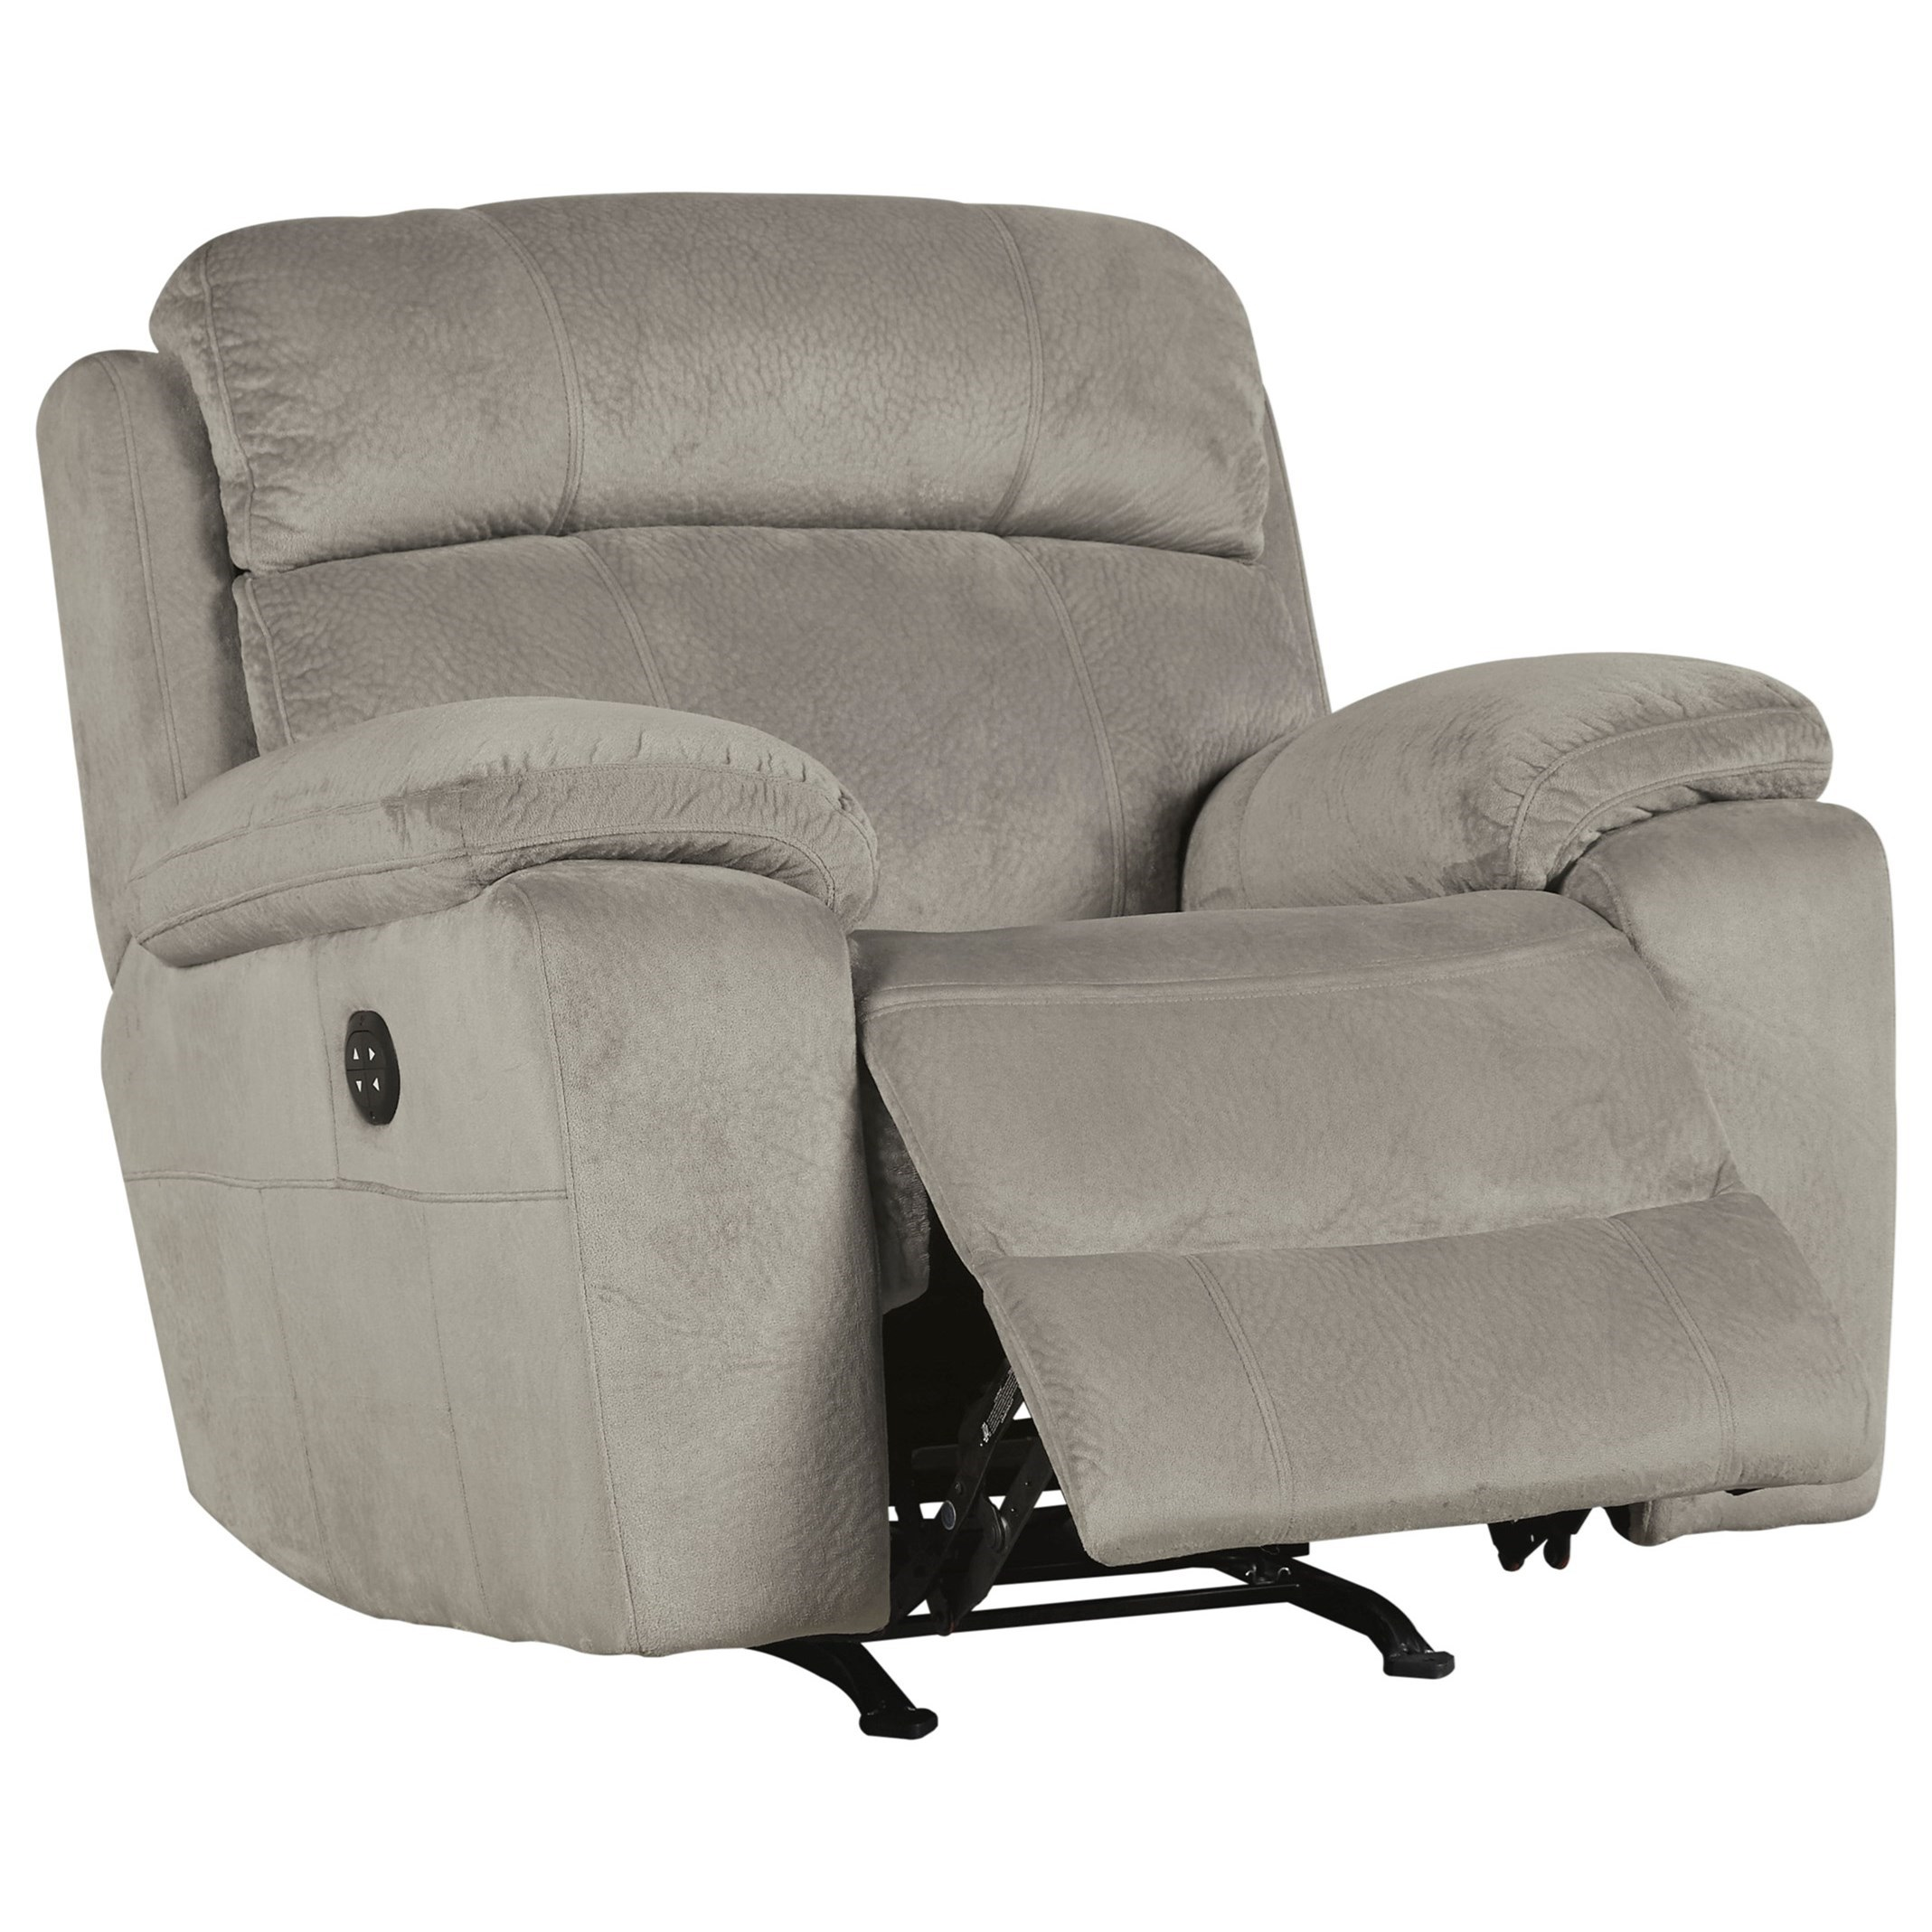 Signature Design by Ashley Uhland Power Recliner with Adjustable Headrest - Item Number: 6480413